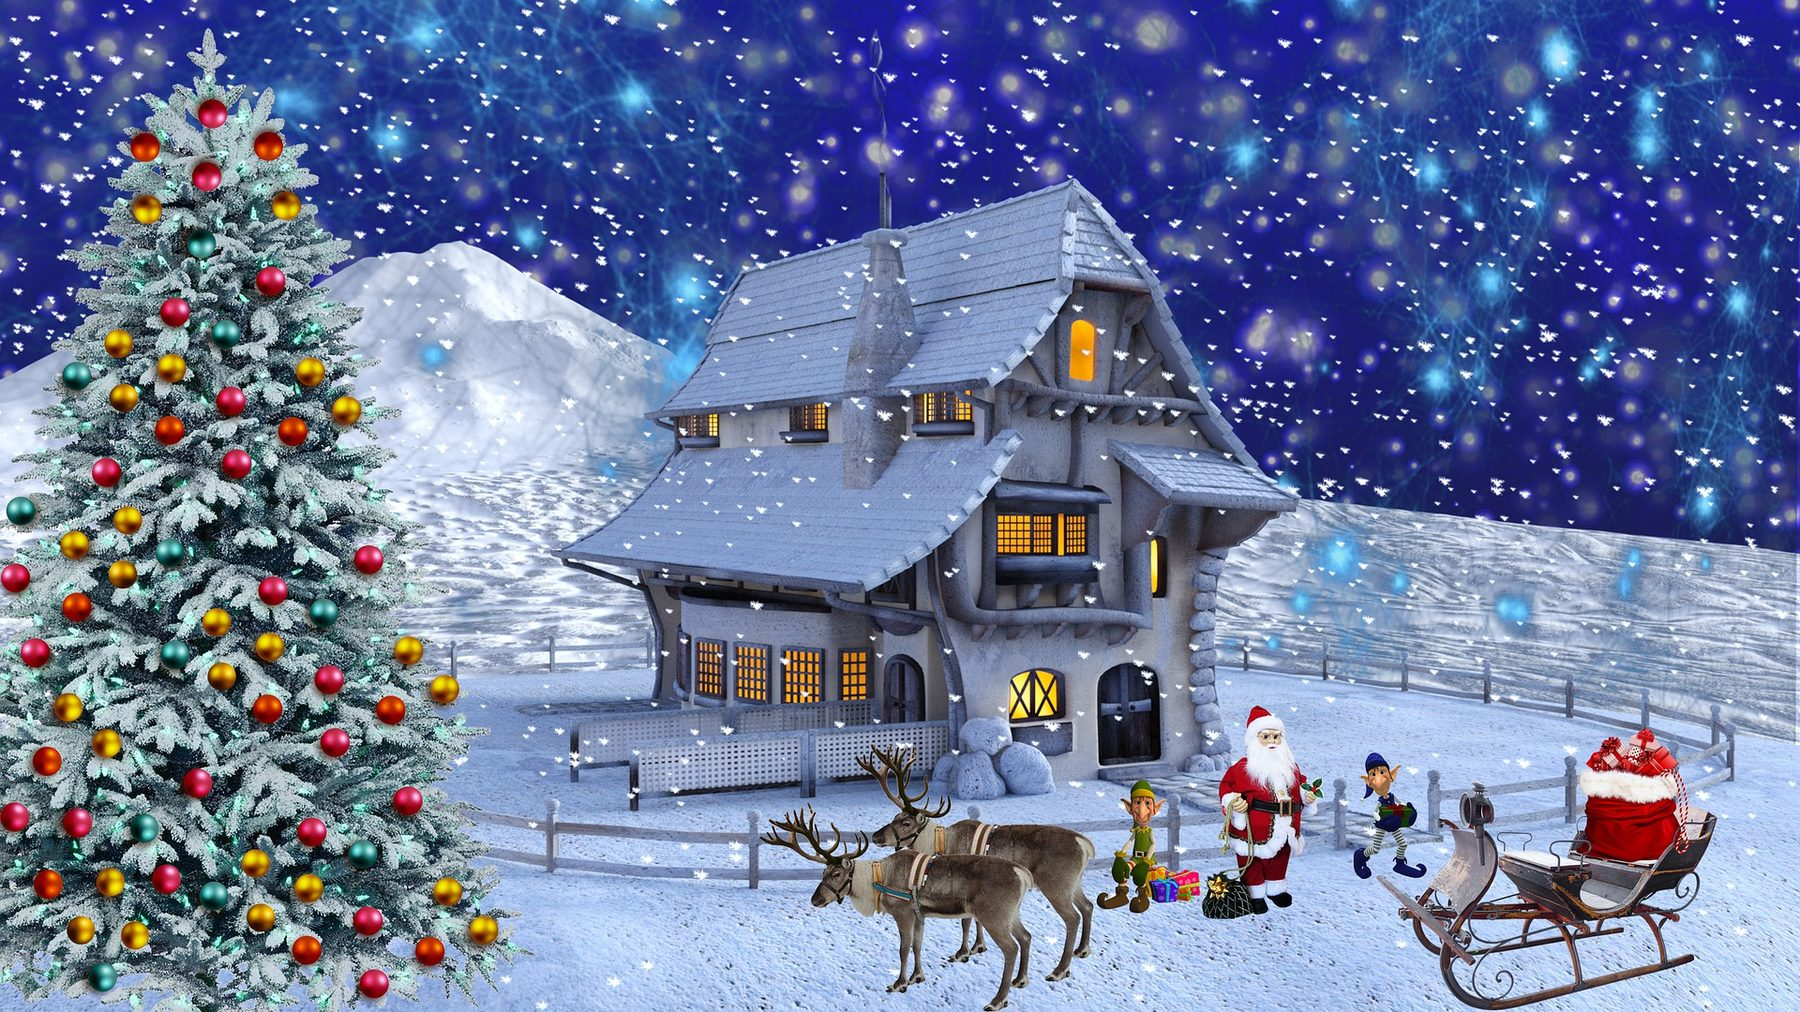 Site Image (Santa, Presents, Snow, Christmas Tree)